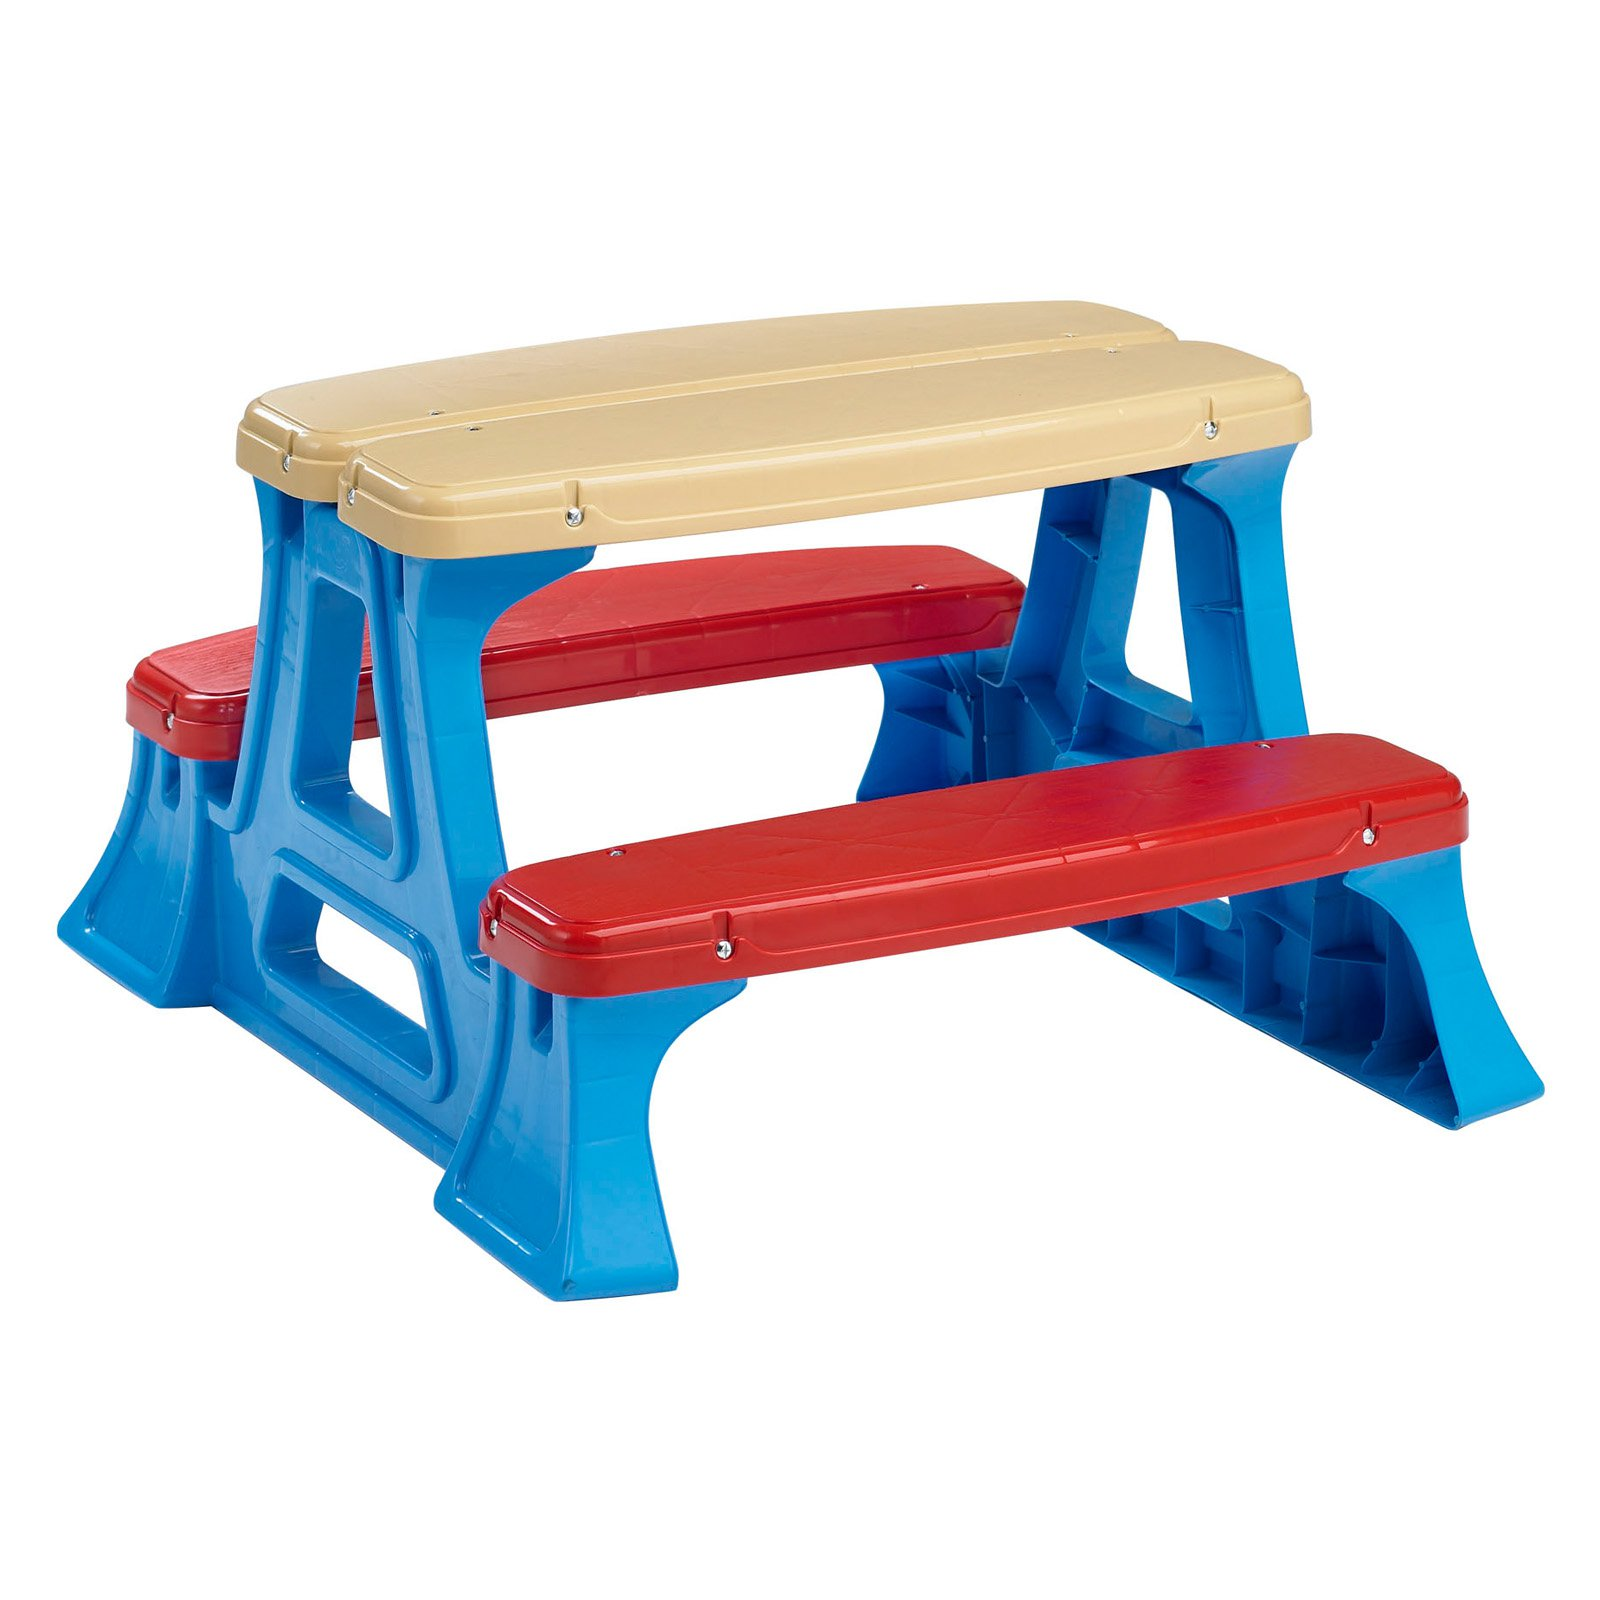 American Plastic Toys Picnic Table